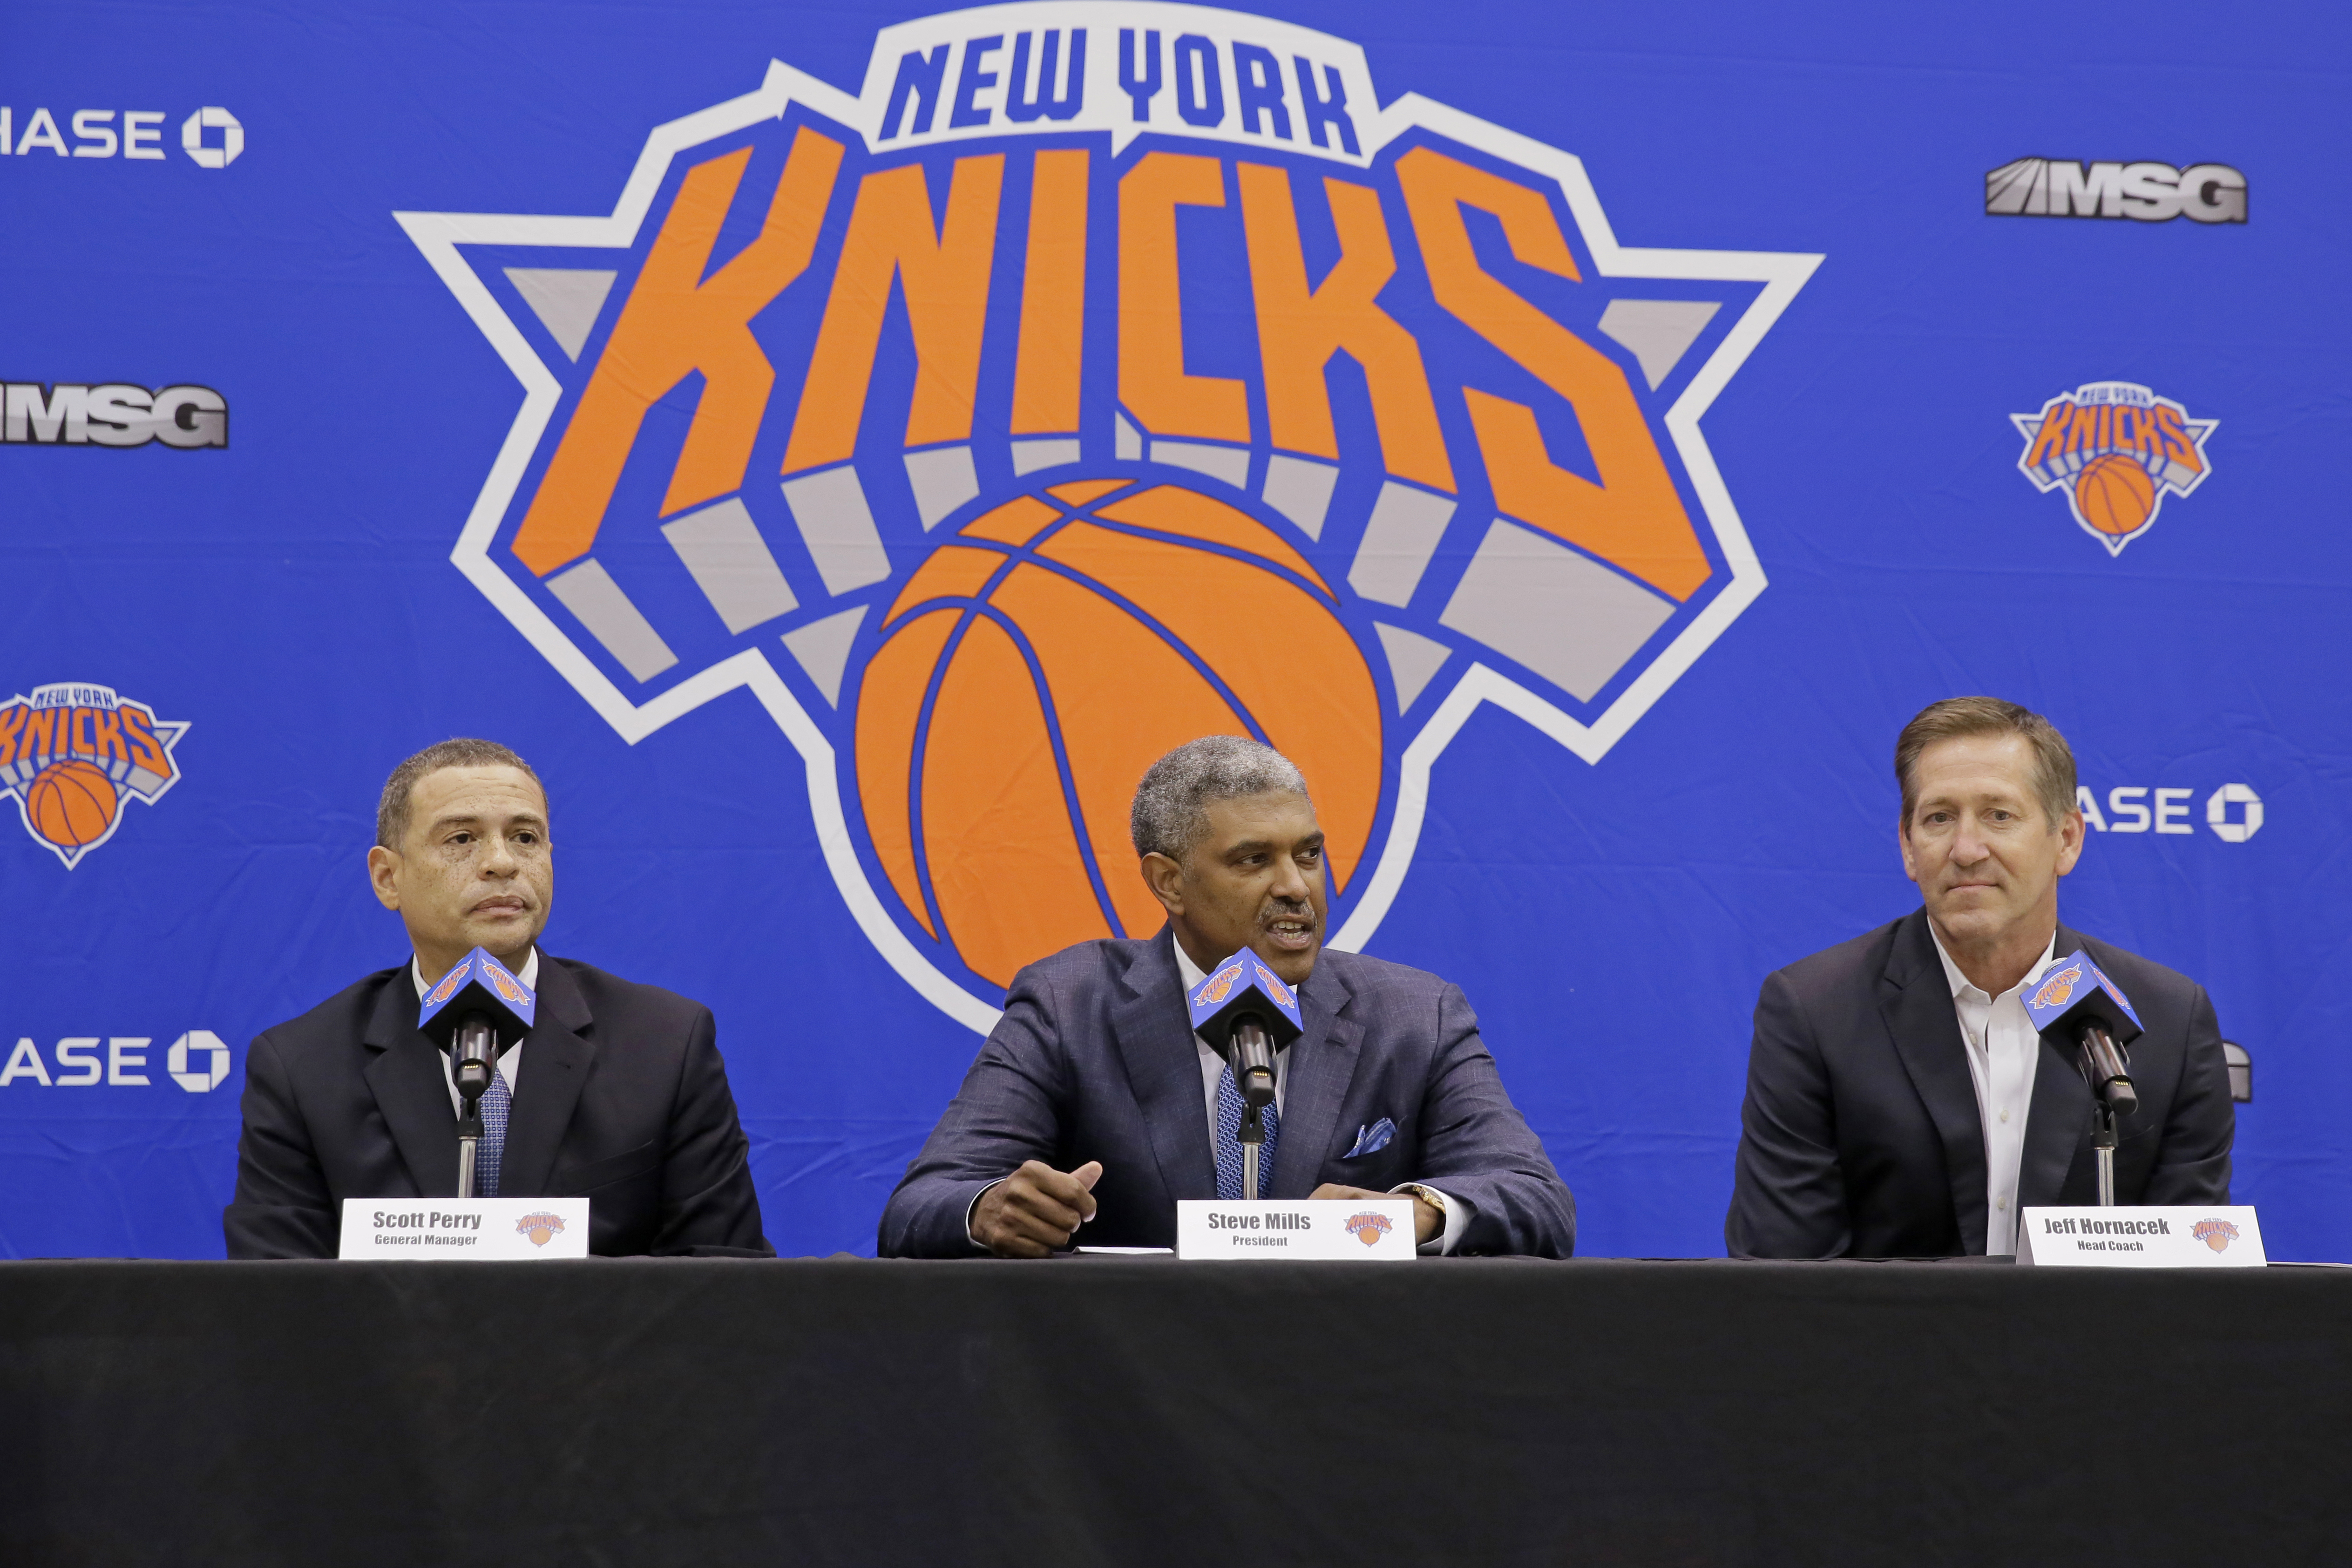 816449440-new-york-knicks-introduce-scott-perry-as-general-manager.jpg